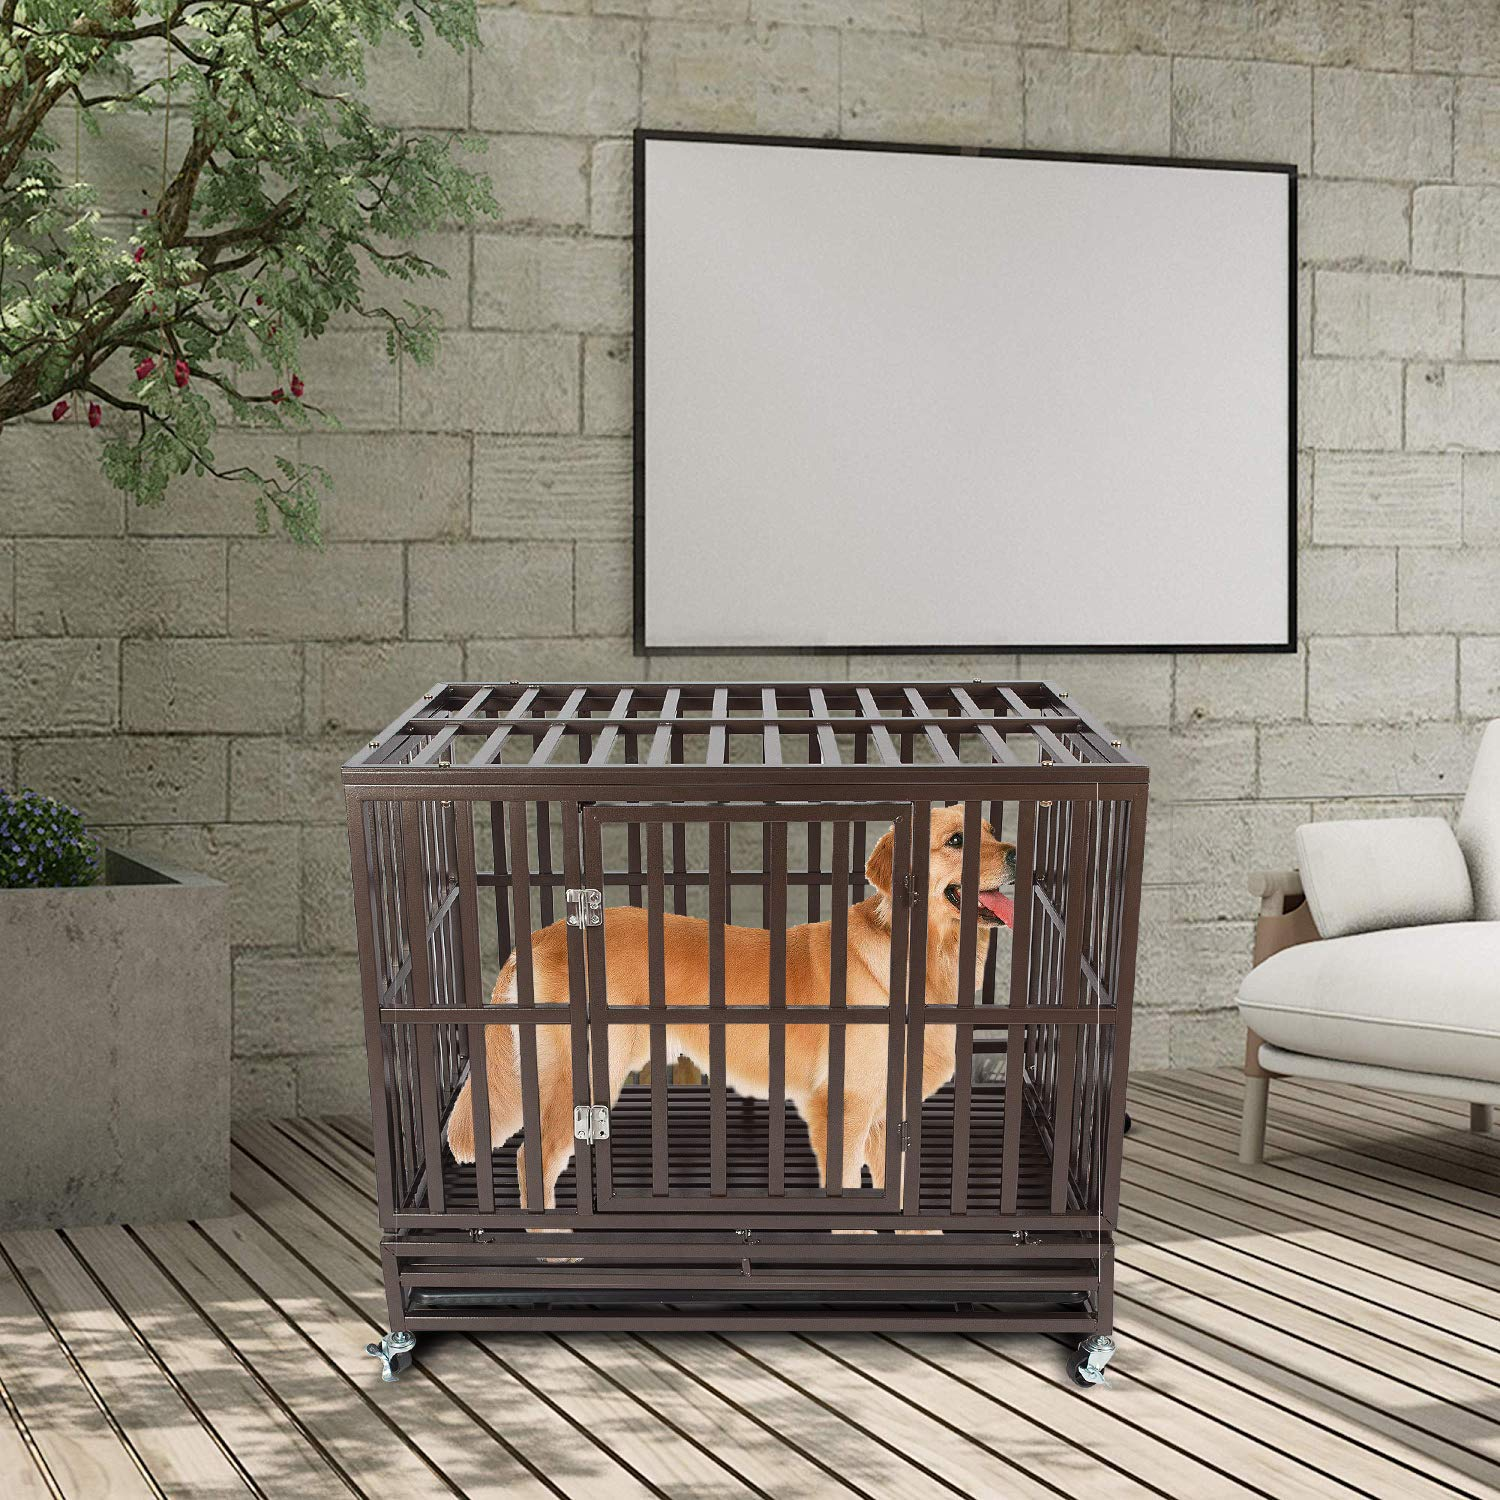 Haige Pet Your Pet Nanny 42'' Heavy Duty Dog Crate Cage Kennel and Playpen Steel Strong Metal for Medium and Large Dogs with Patent Lock and Four Lockable Wheels, Black by Haige Pet Your Pet Nanny (Image #5)